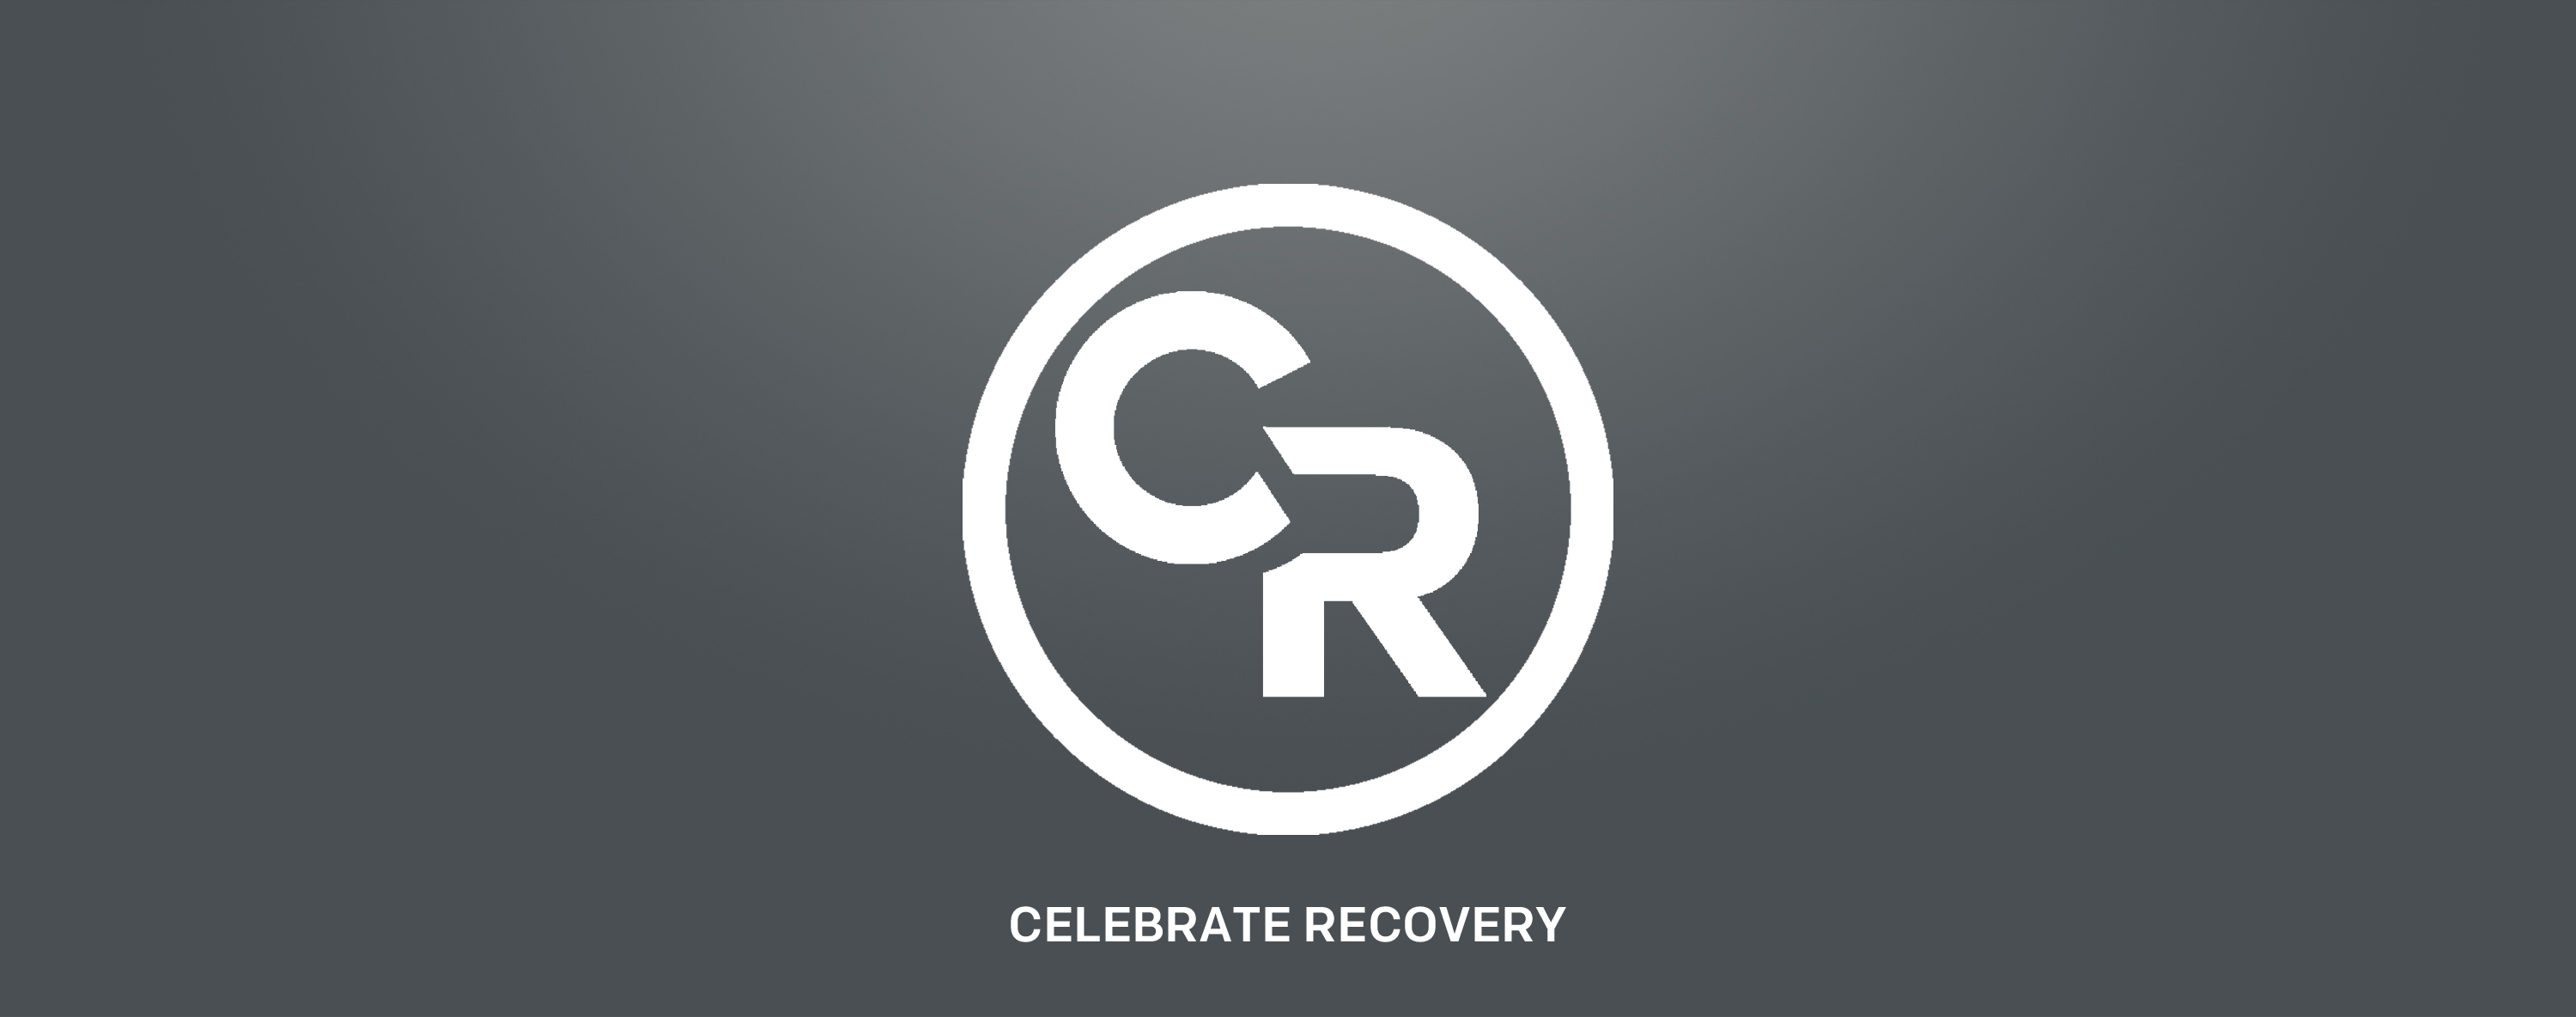 Celebrate Recovery Images